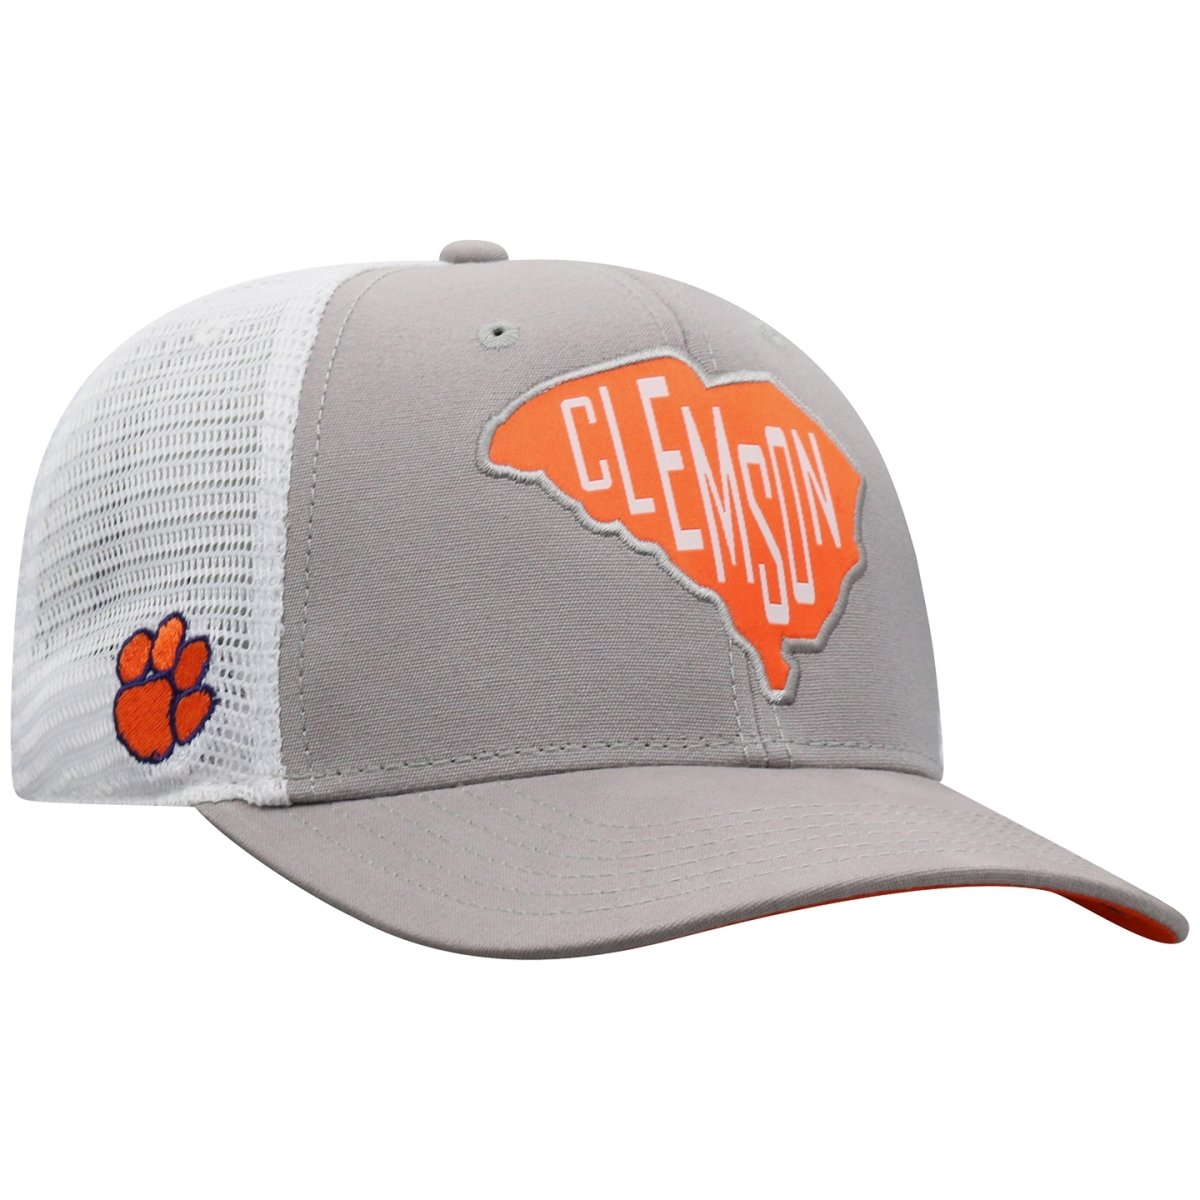 Top of the World Clemson Tigers Hirise Trucker Hat With State Patch - Mr. Knickerbocker